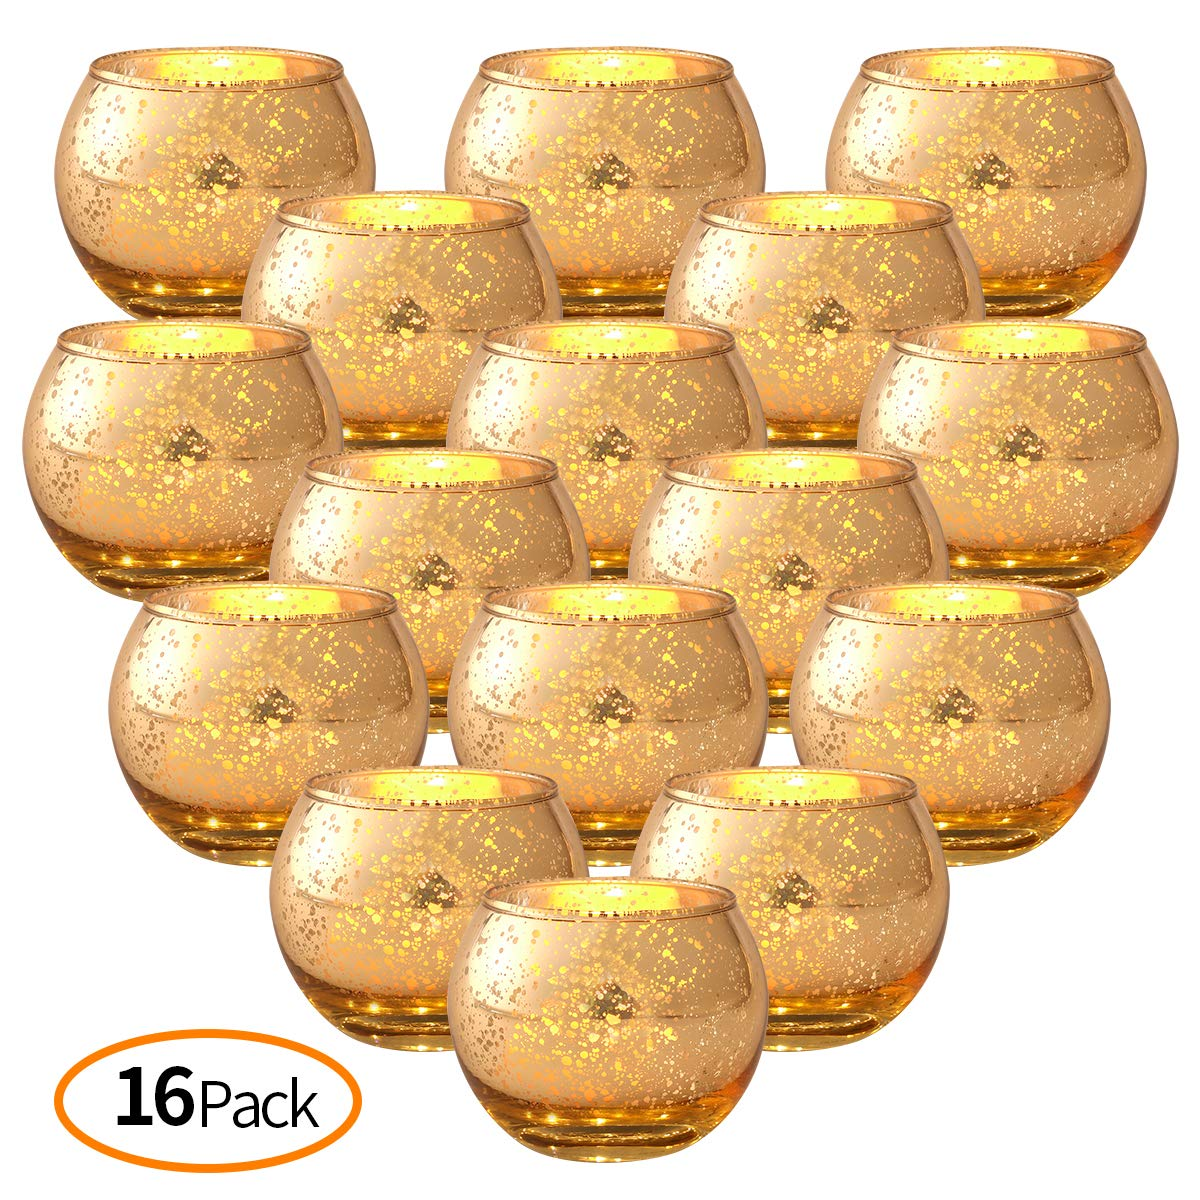 DerBlue 16Pcs Round Mercury Glass Votive Candle Holders for Wedding Centerpieces, Valentines Dinner, Garden Tub and Any Theme Events(Gold)